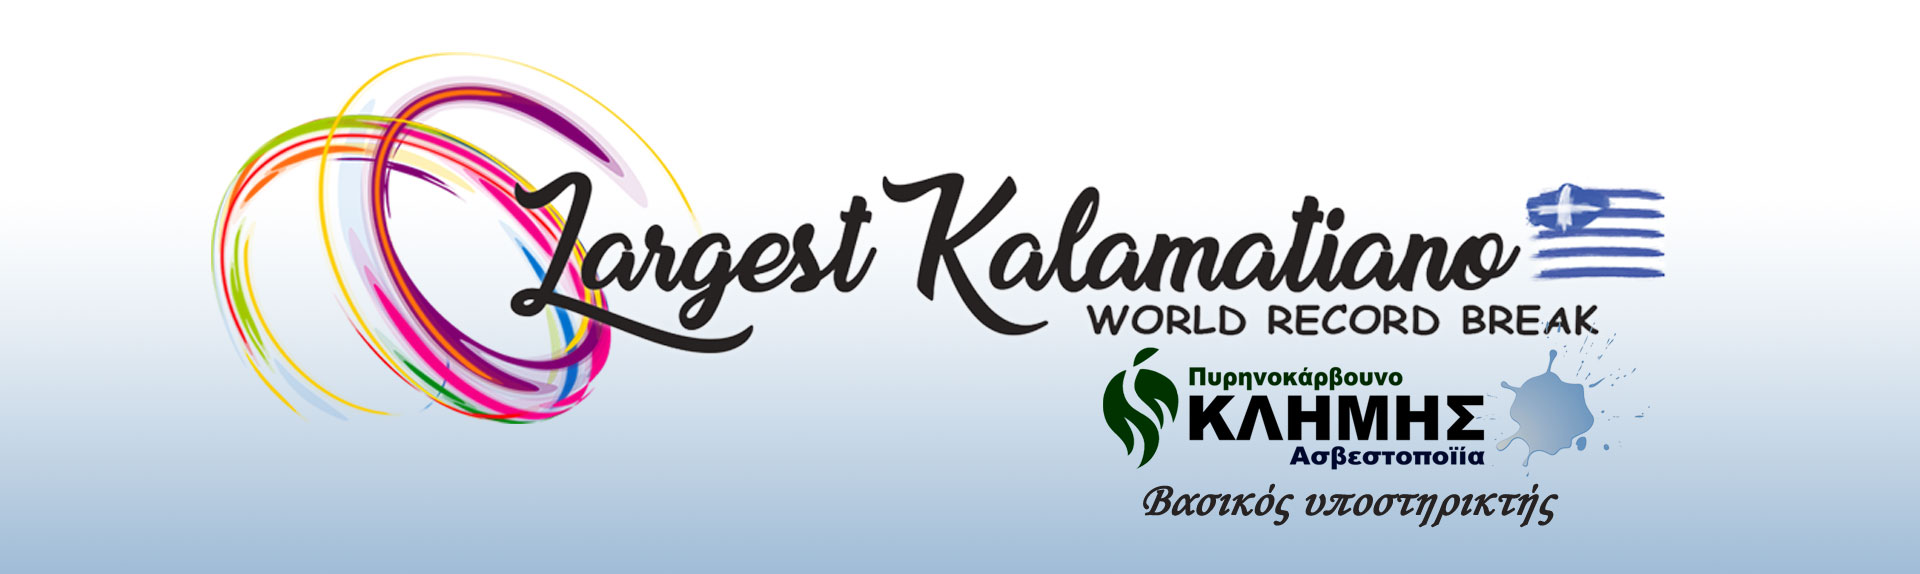 Kalamatiano Guinness World Record